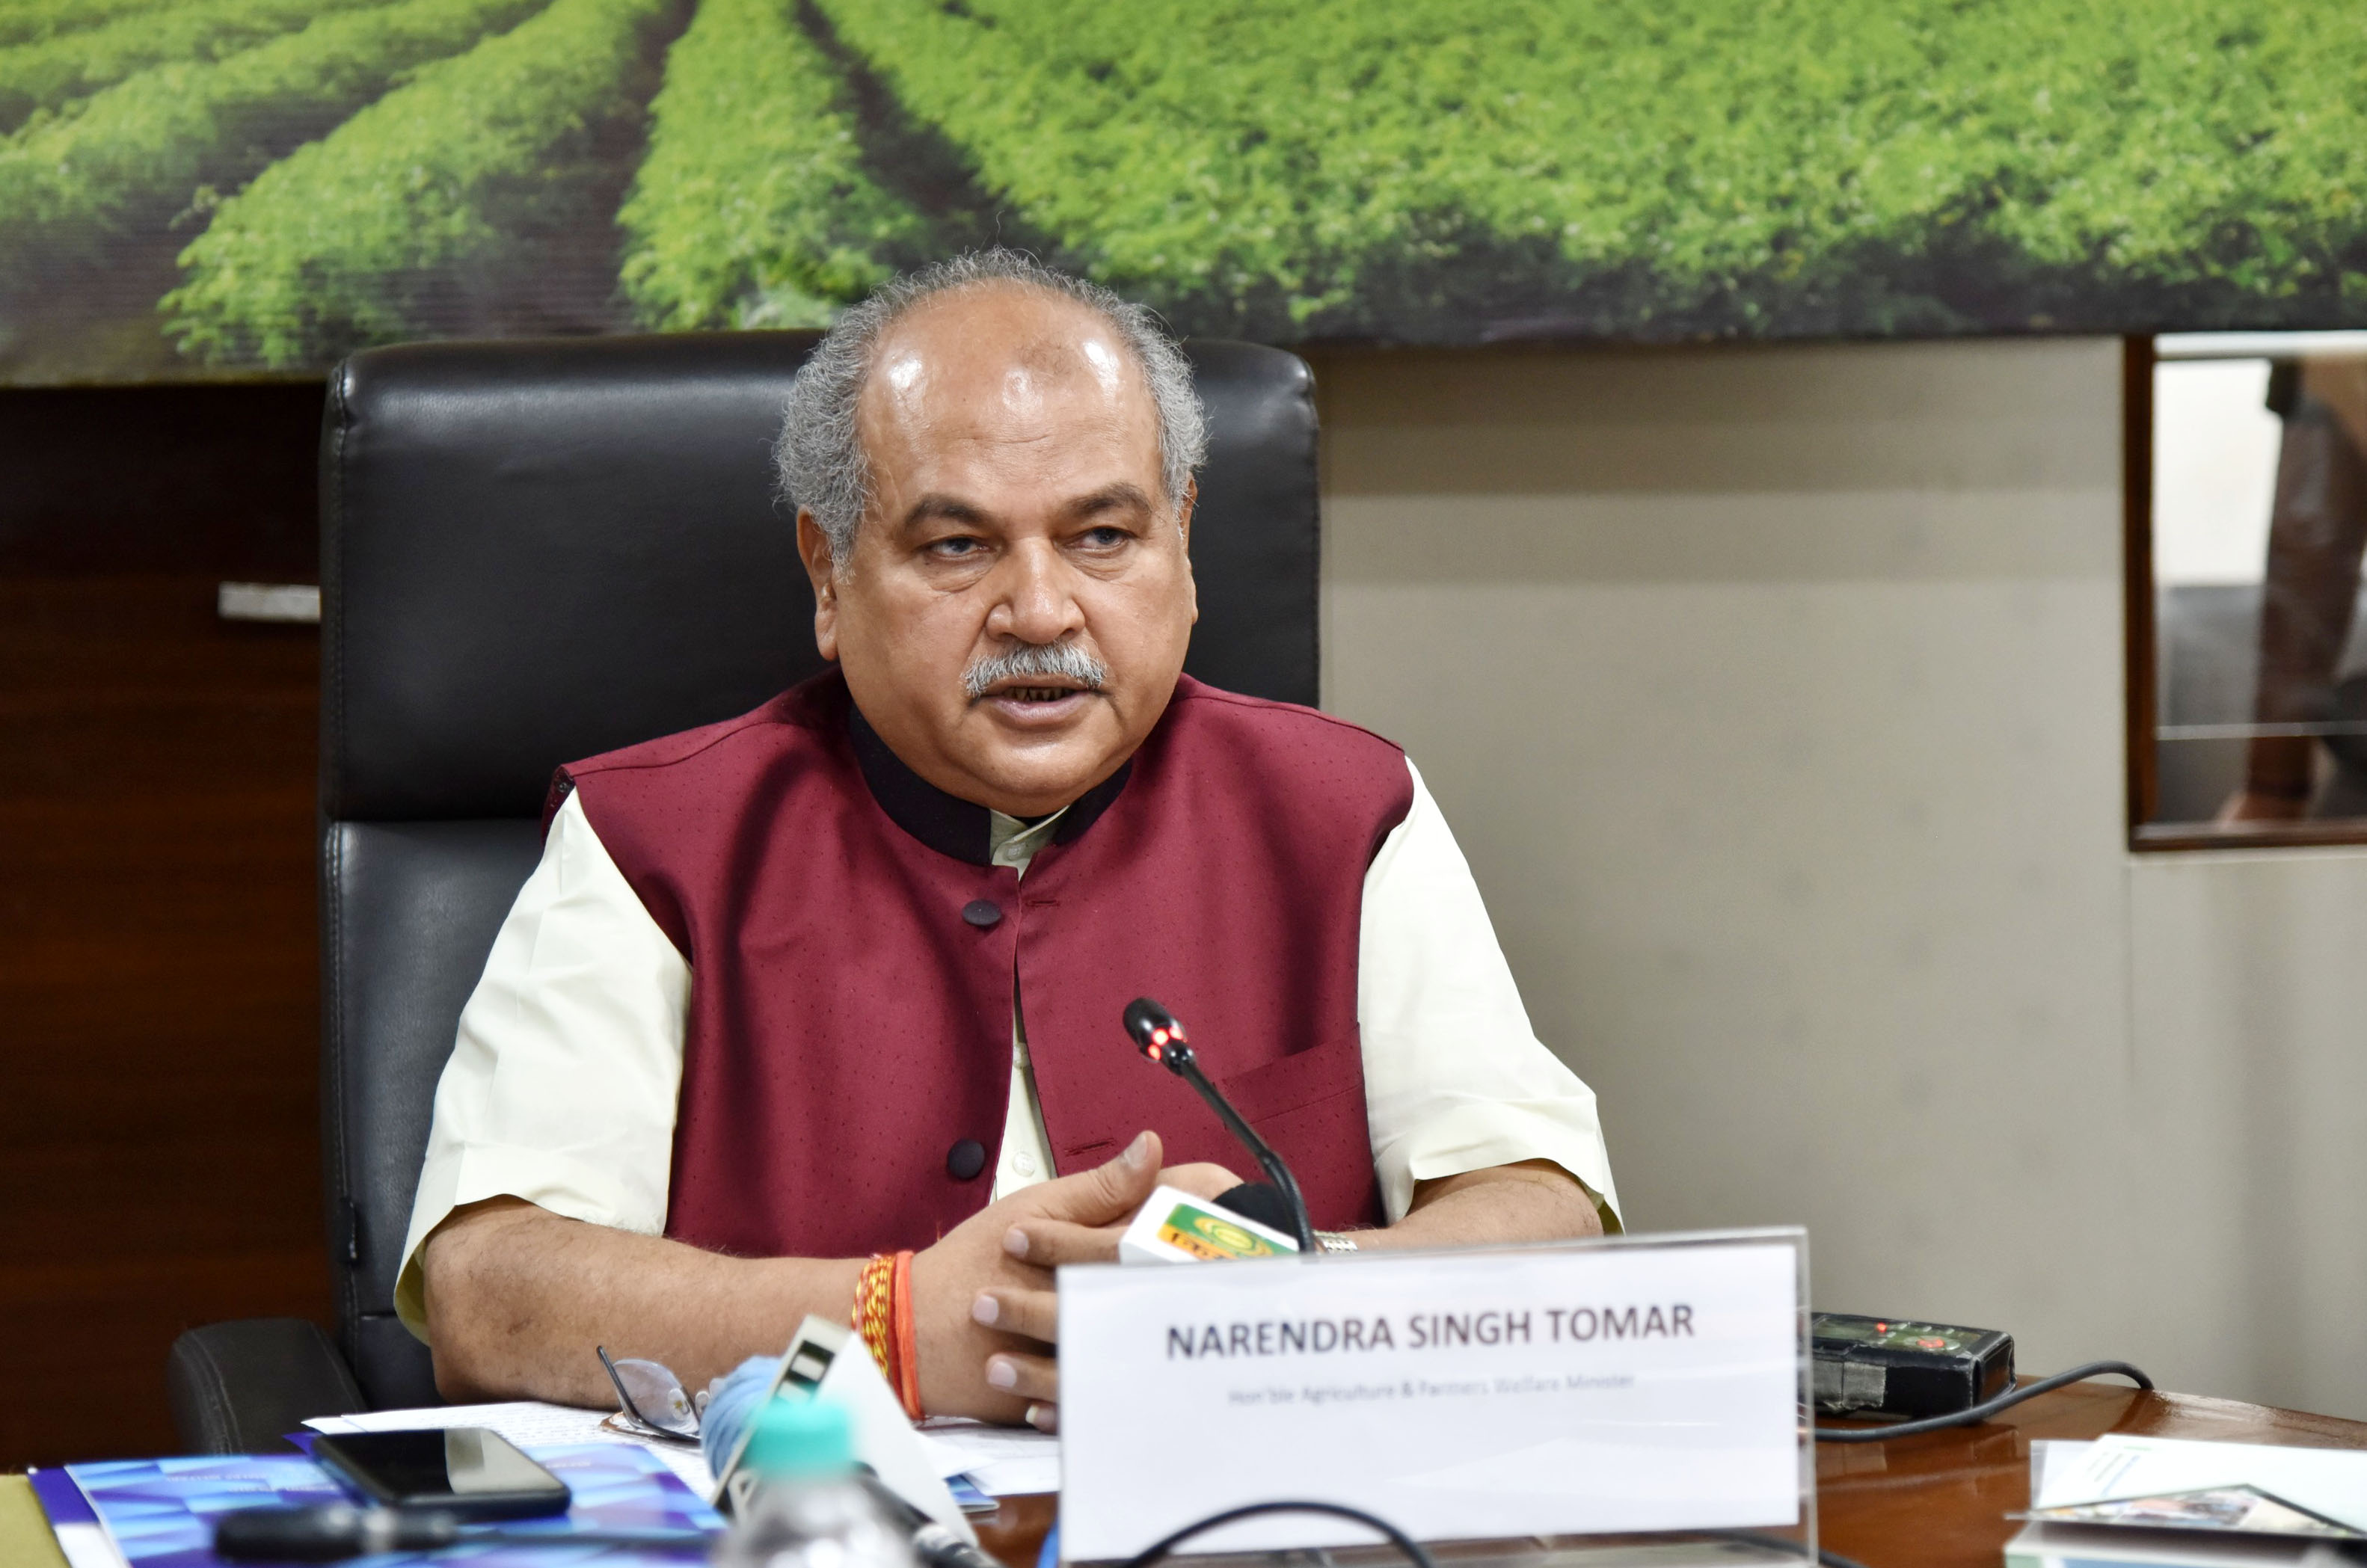 The Union Minister for Agriculture & Farmers Welfare, Rural Development and Panchayati Raj, Shri Narendra Singh Tomar addressing at the 92nd ICAR Foundation Day & Award Ceremony through virtual platform, in New Delhi on July 16, 2020.